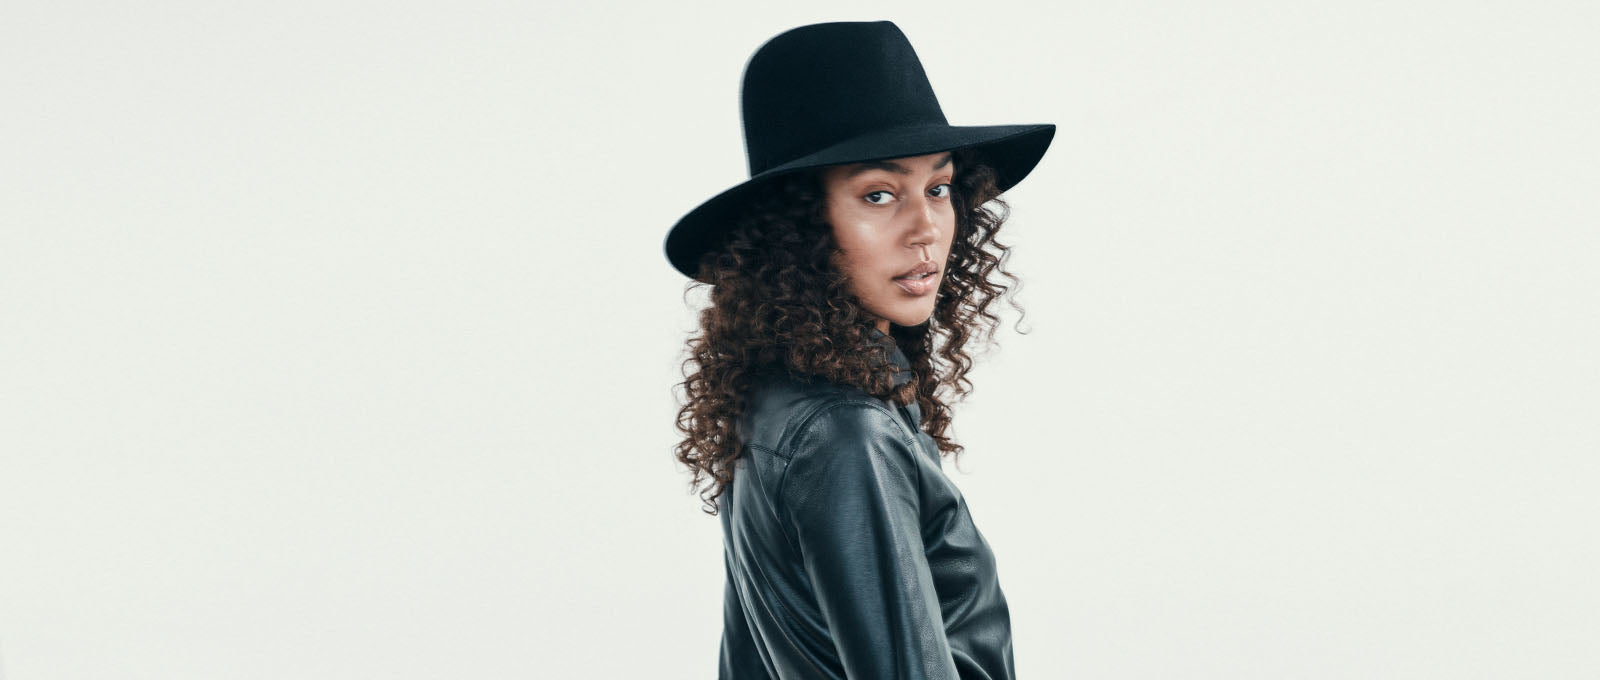 Black simple fedora with edgy cut out and black suede detail designed by janessa leone for fall winter 2019 collection beautiful travel hats for women high end luxury hat brand